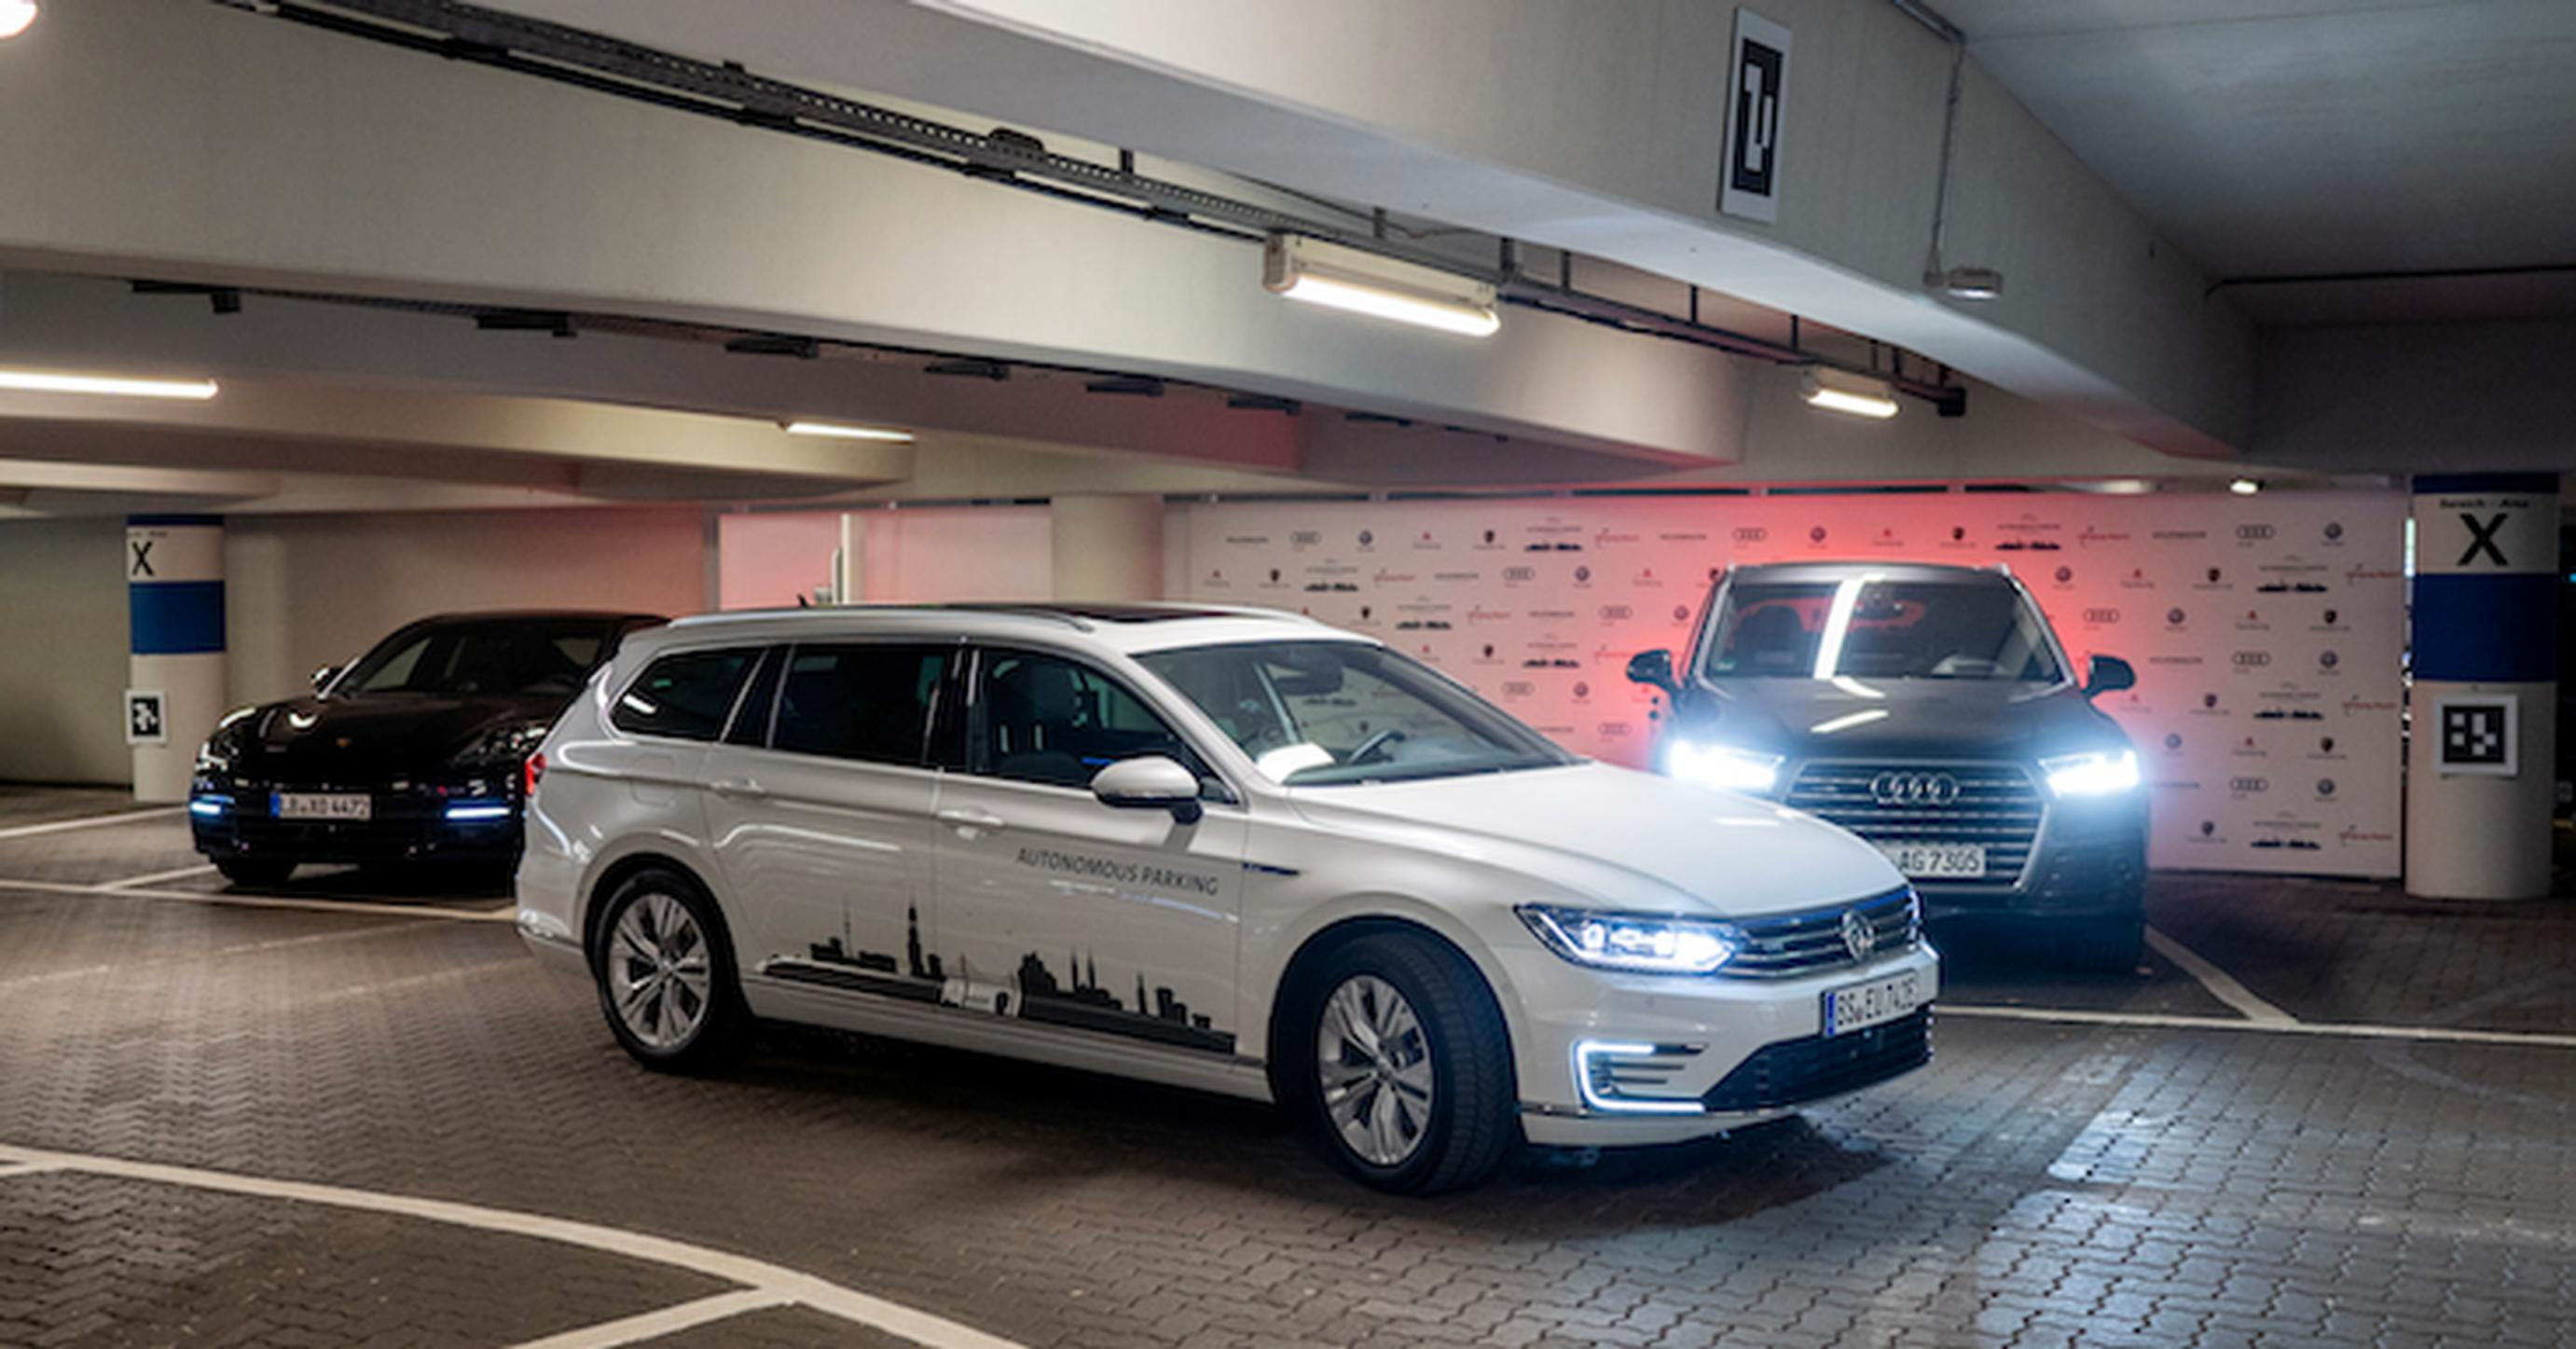 Volkswagen pilots autonomous parking at Hamburg Airport